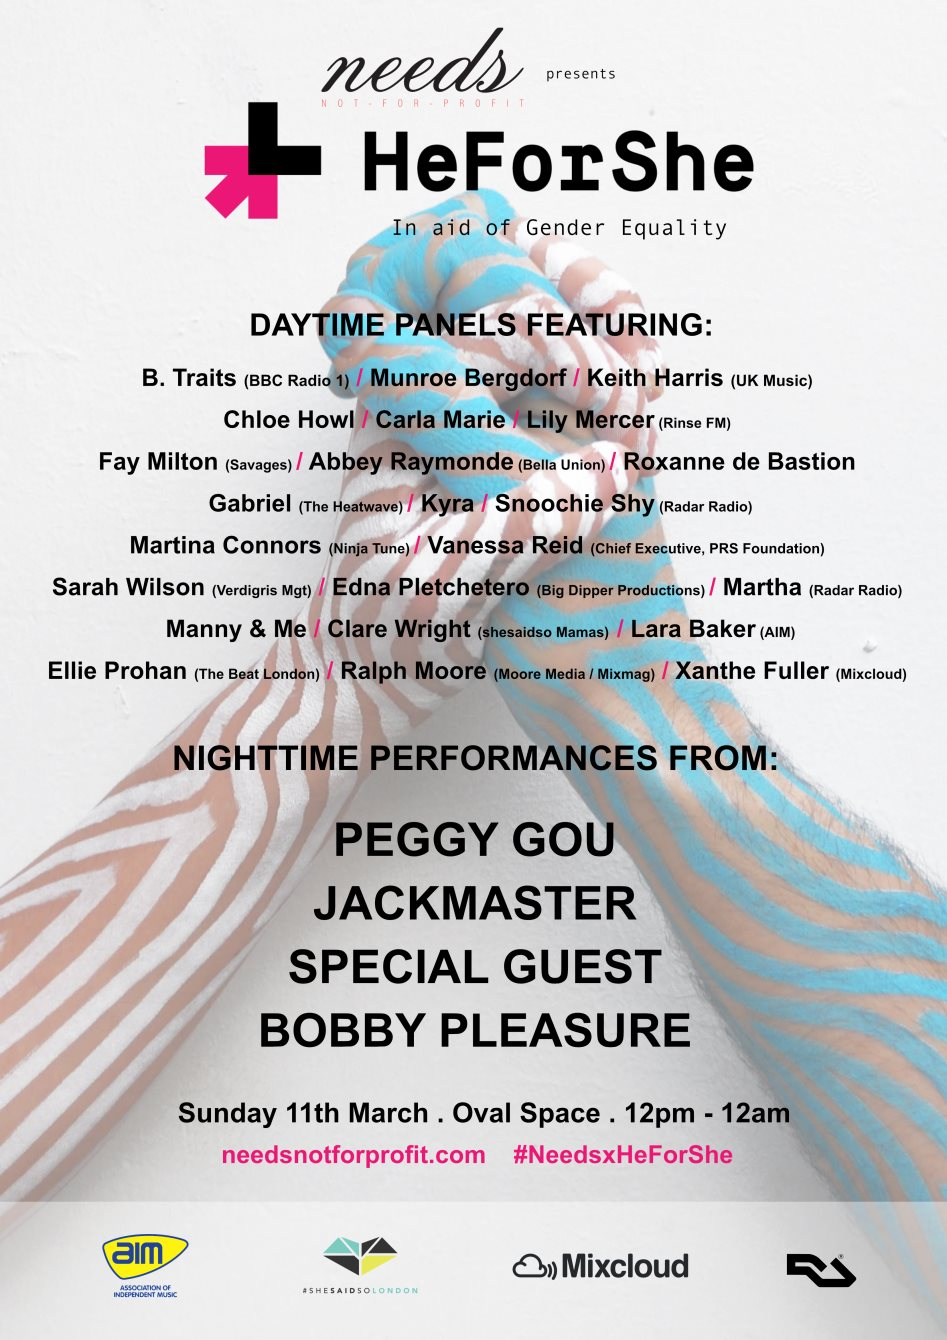 Needs x HeForShe with Jackmaster, Peggy Gou, B Traits, Munroe Bergdorf & Many More - Flyer front